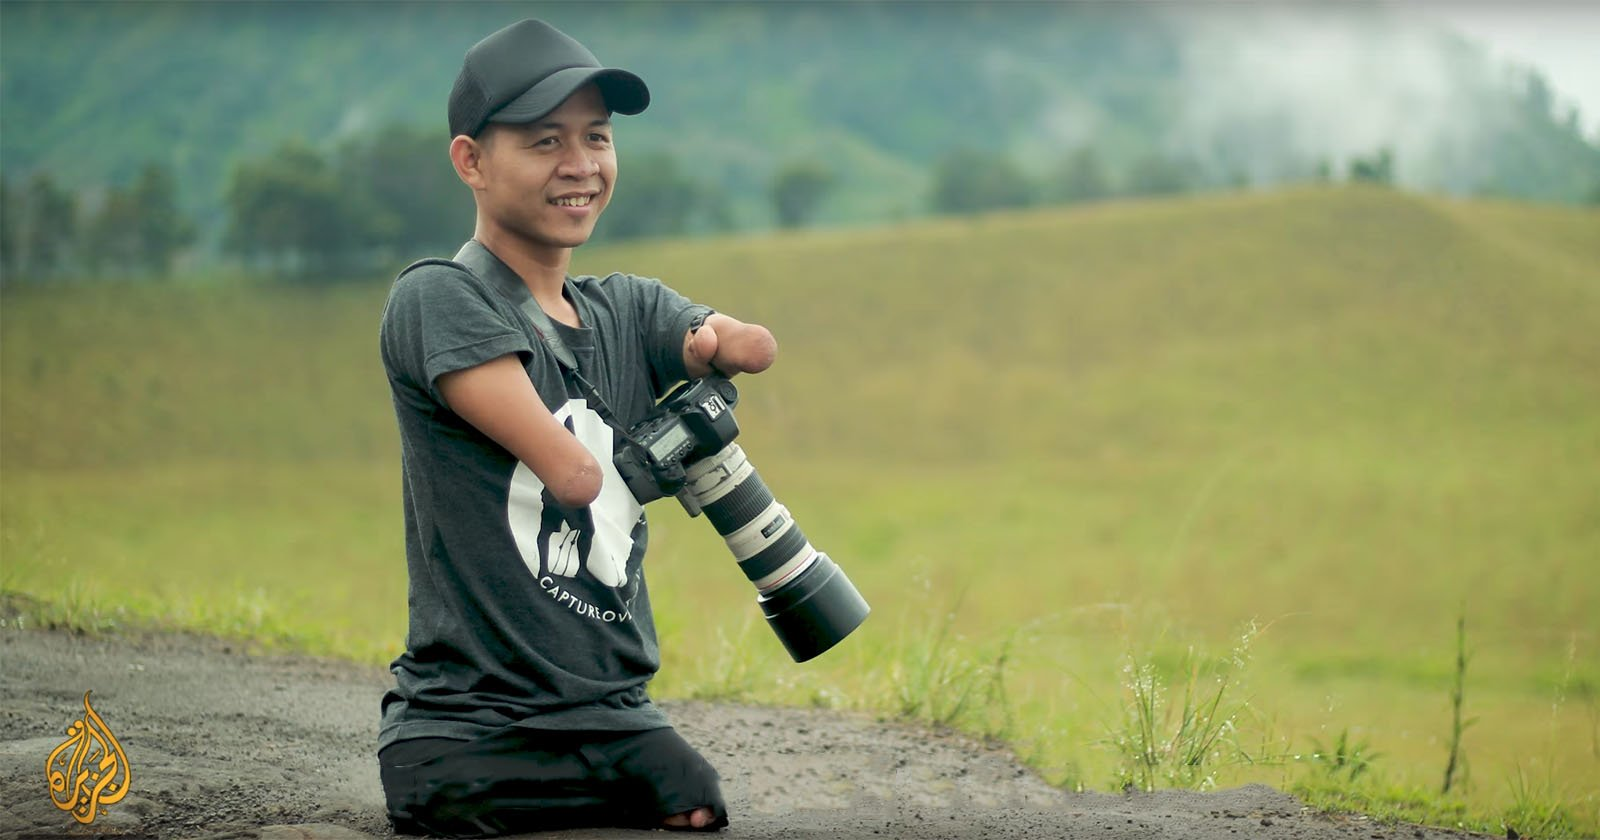 This Pro Photographer Was Born Without Hands and Legs